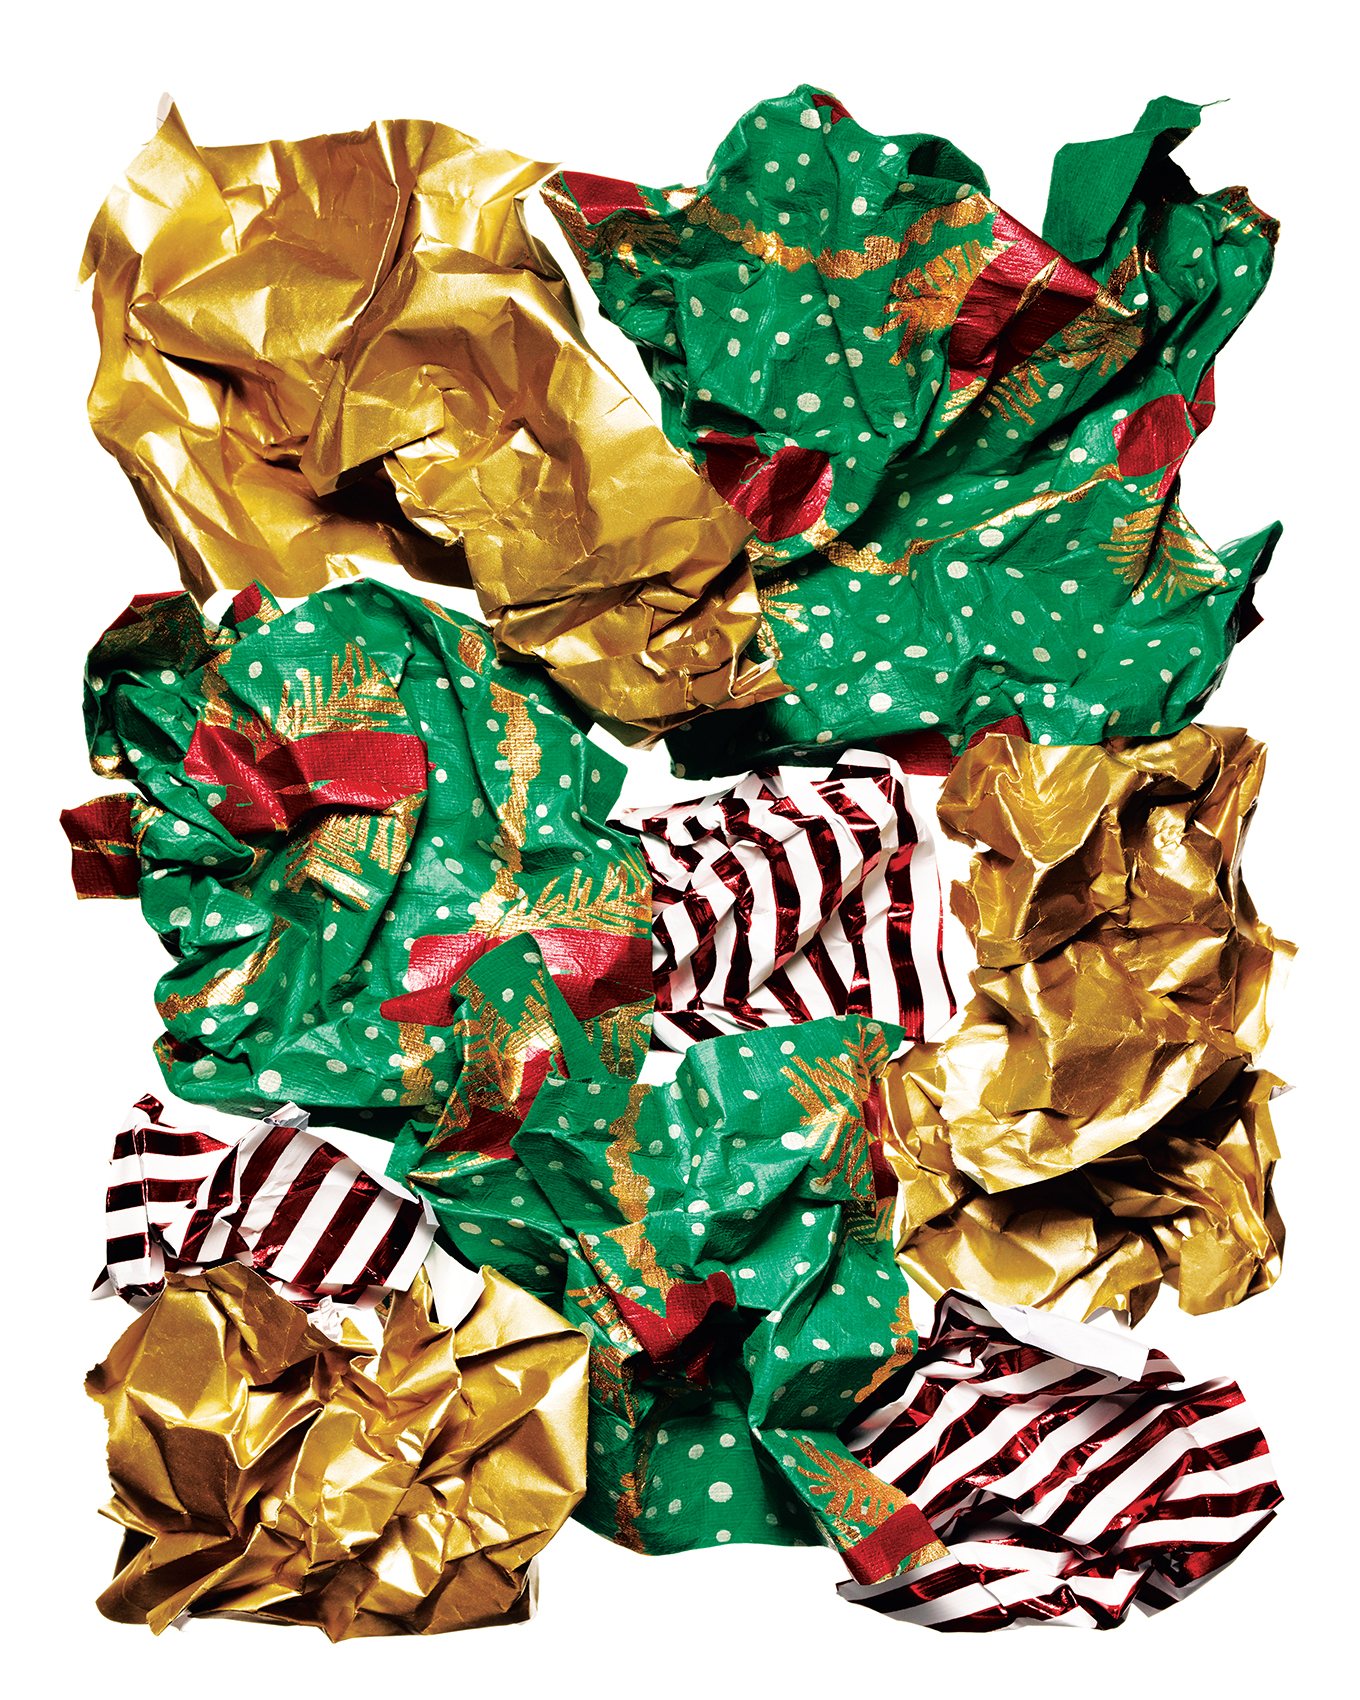 Still life of gold, green, red and white striped wrapping paper